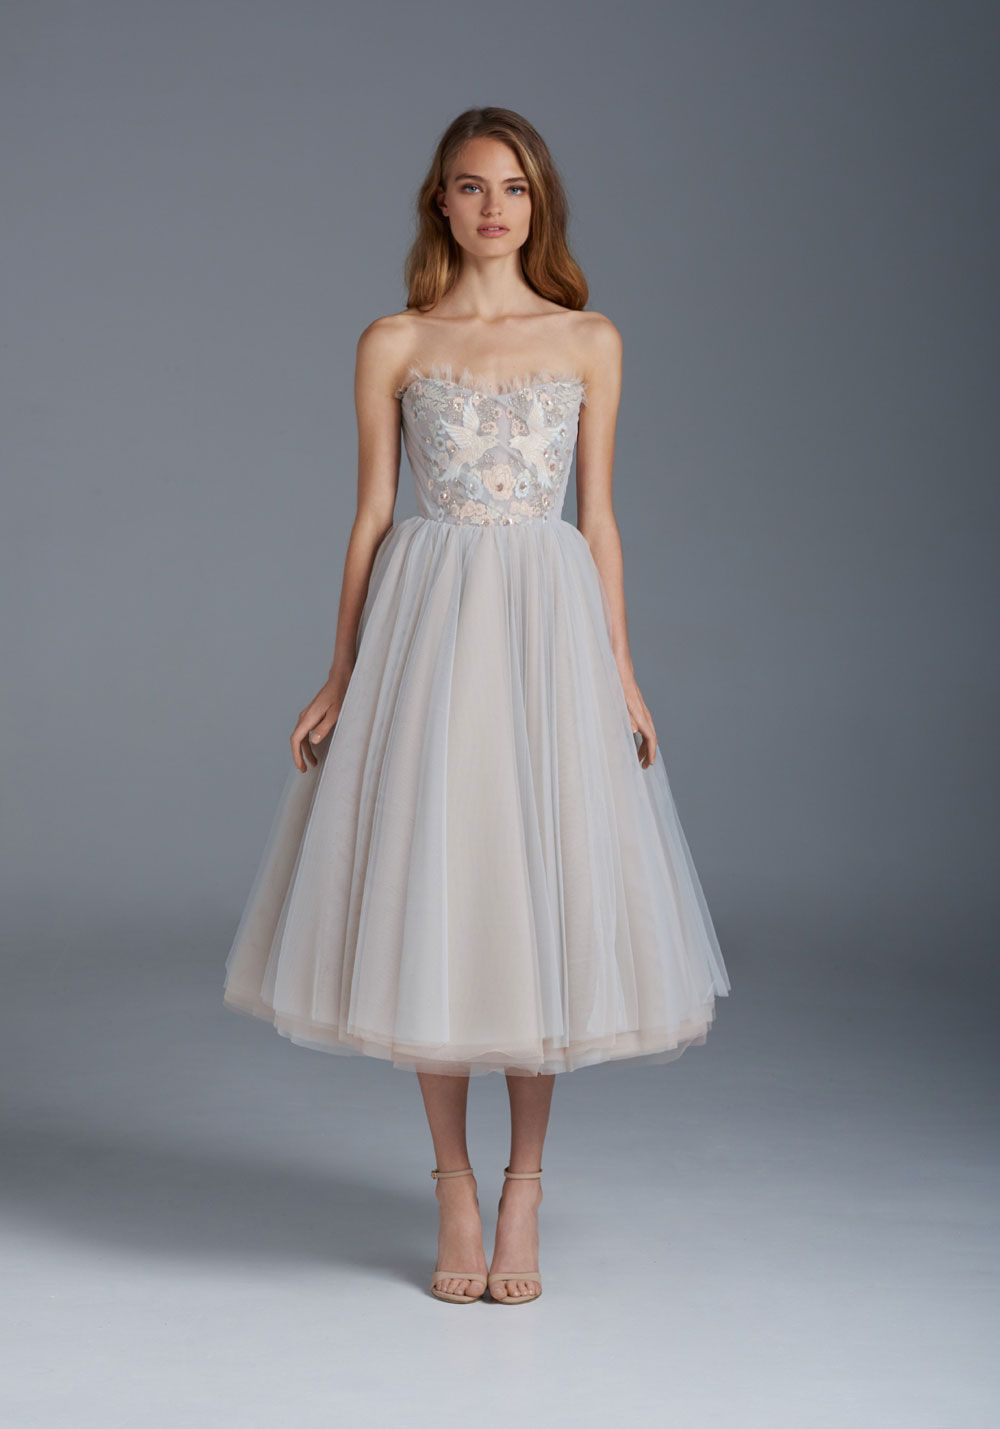 ss couture paolo sebastian fashion a mix of everything